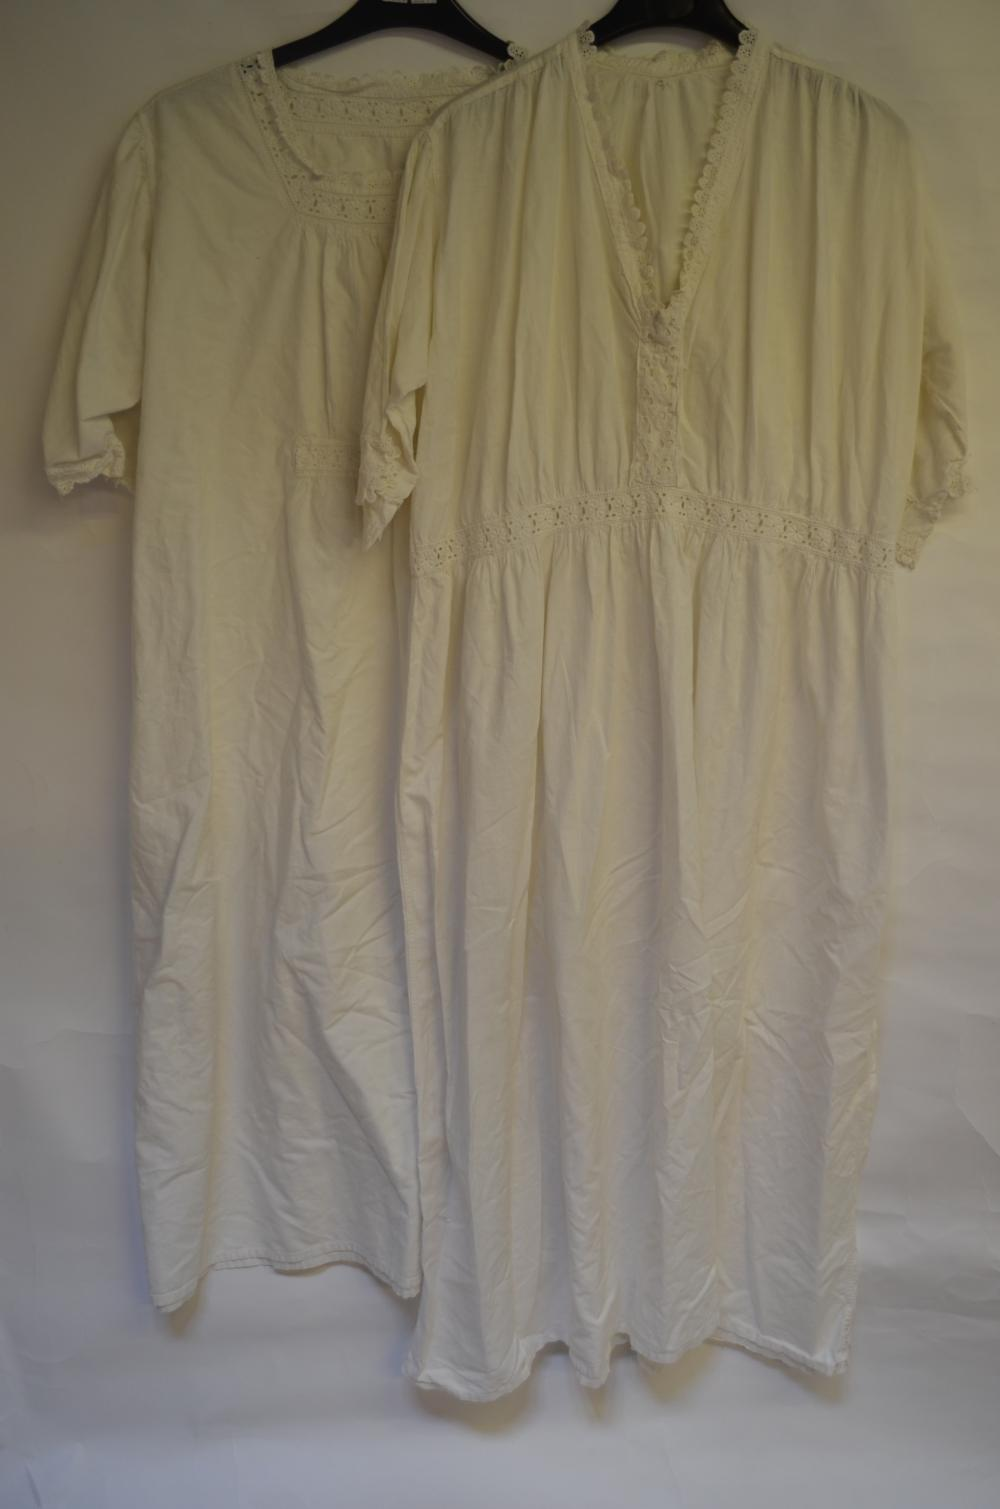 Victorian cotton nightgowns etc.